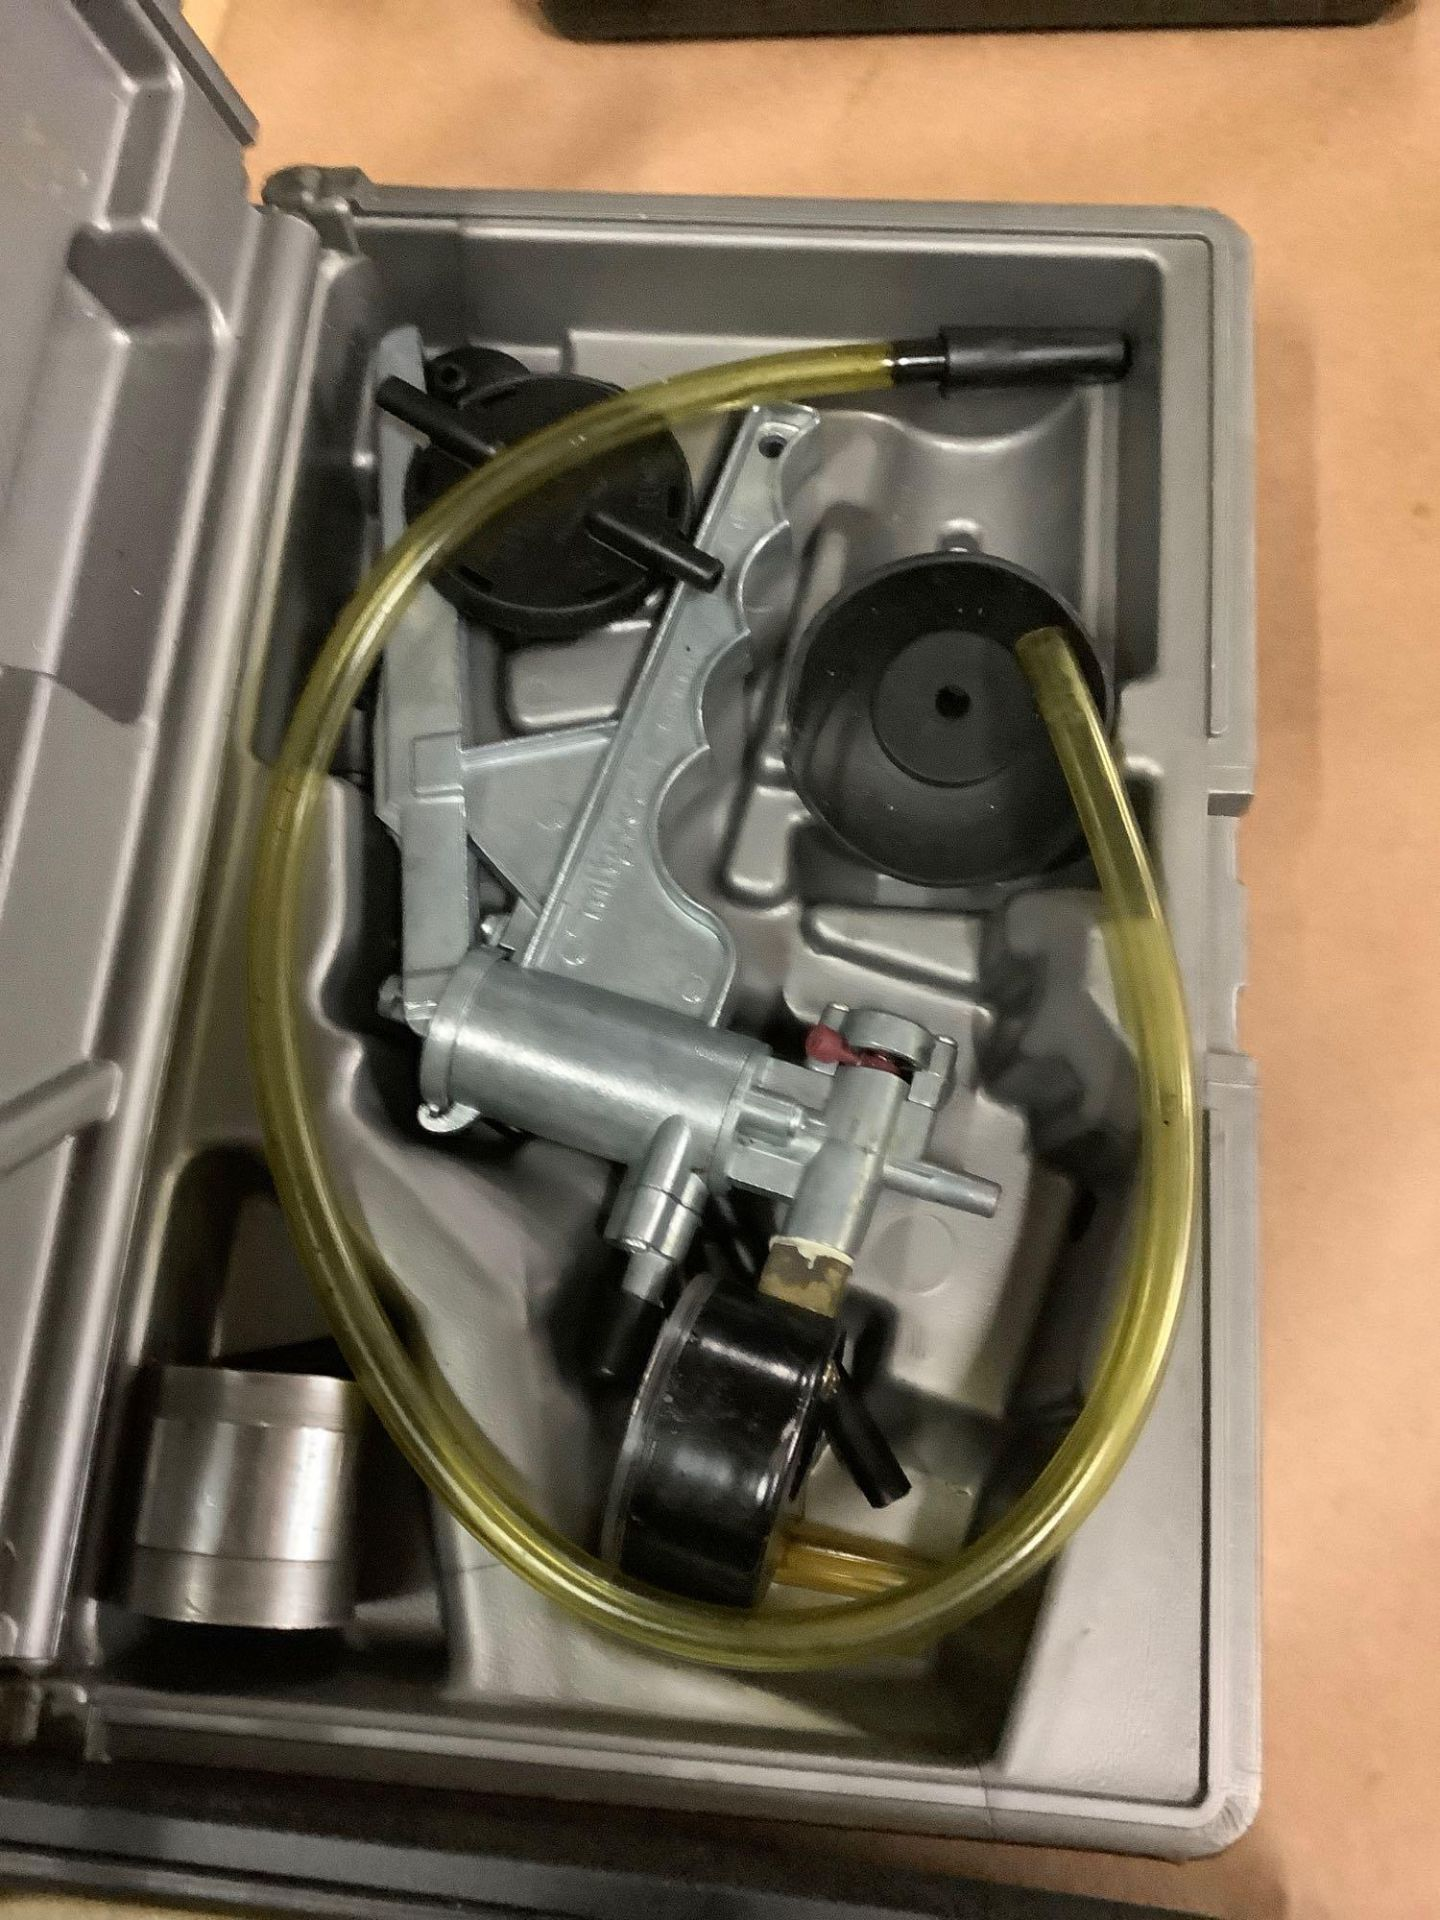 Lot of 2: (1) Mighty Vac Vacuum Pump (1) ETCH-0 Matic Engraver - Image 5 of 6